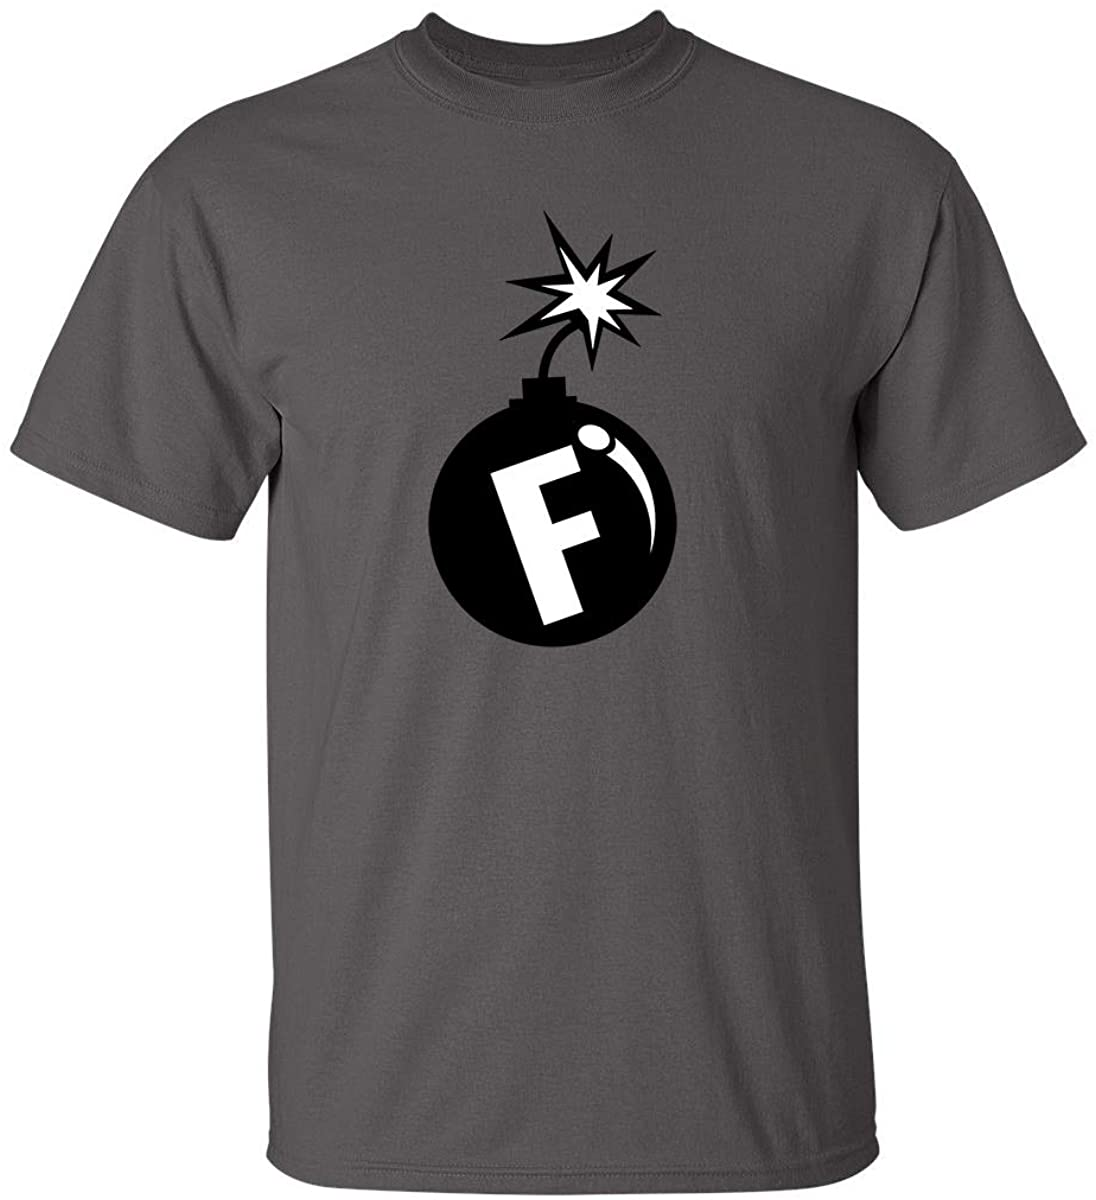 F Bomb Adult Humor Mens Offensive Graphic Novelty Sarcastic Funny T Shirt